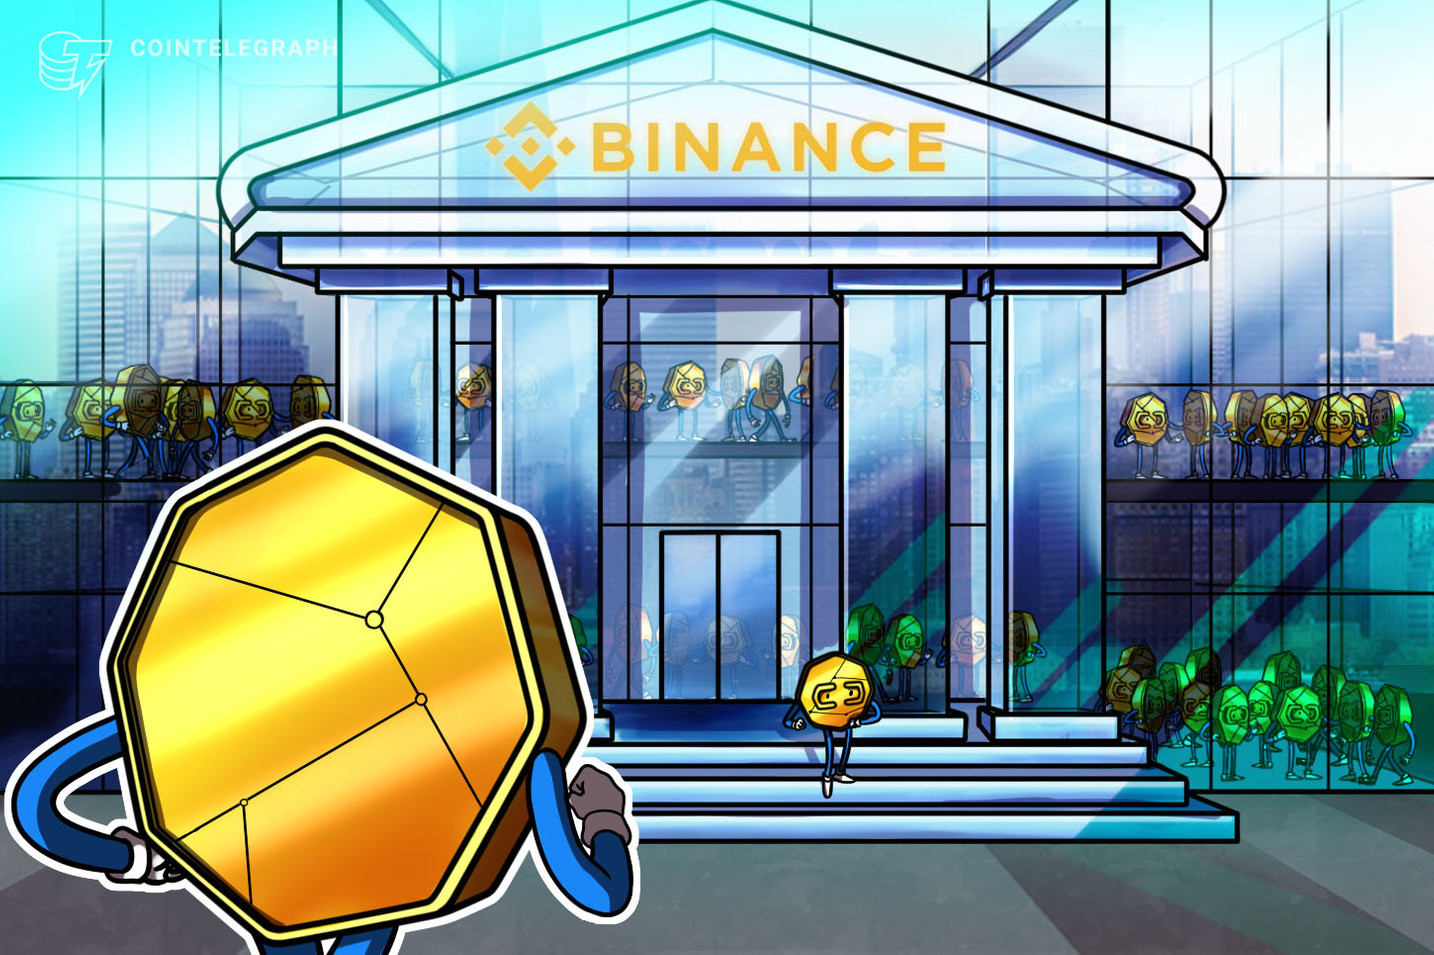 Binance hits record high of $80B in daily volume as crypto markets surge